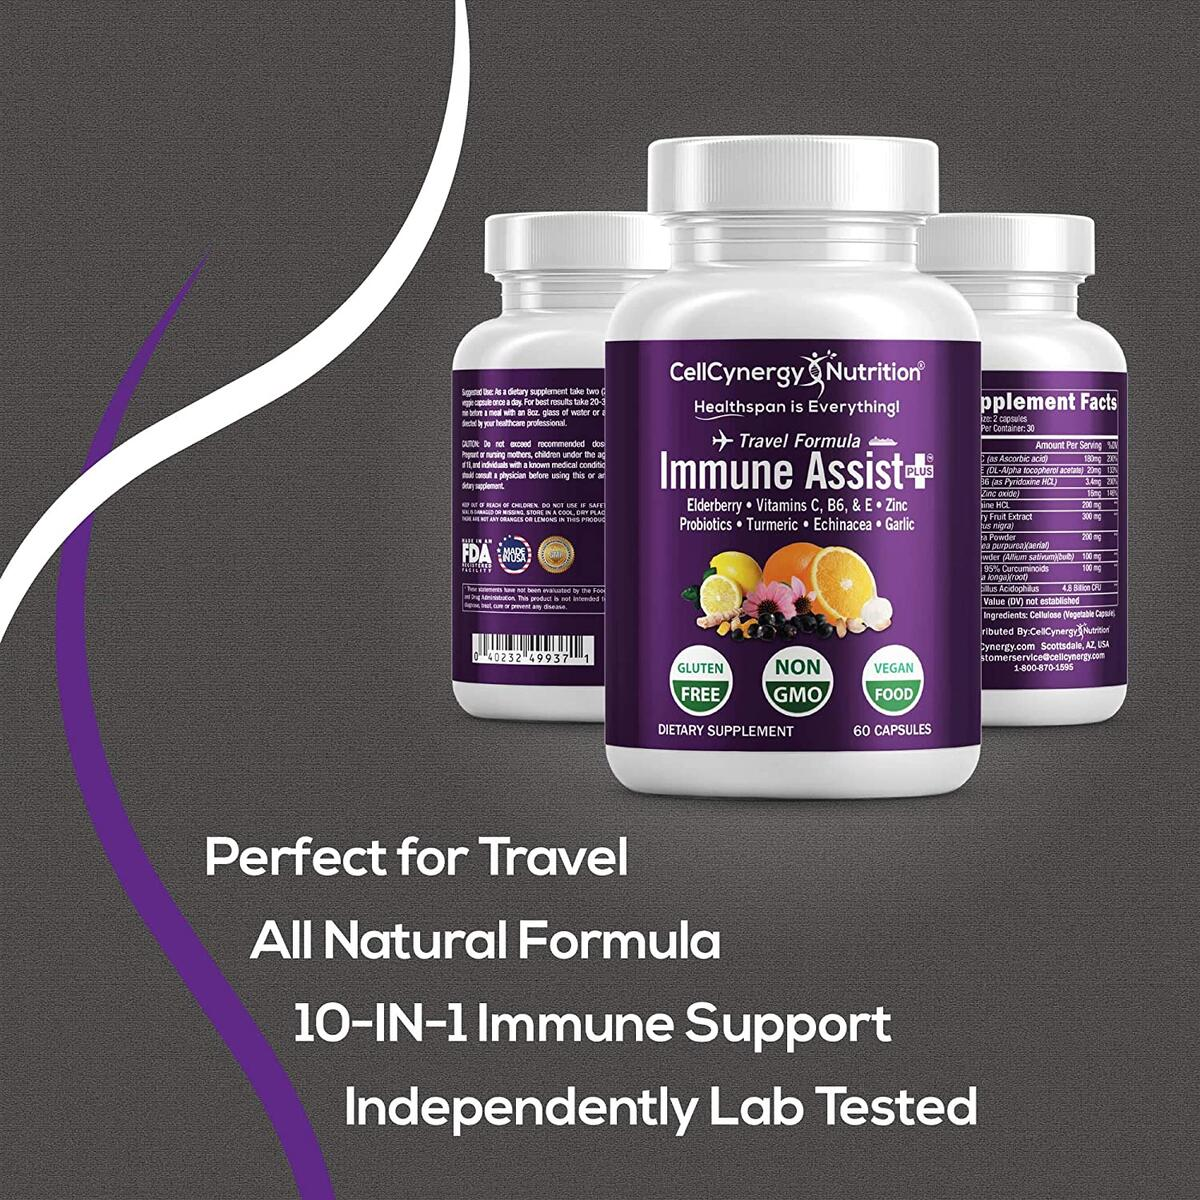 Immune Assist+ Immune Support Supplement with 10 Ingredients - Travel Formula to Boost Your Immune System - Multivitamin Supplement with Elderberry, Vitamin C, Zinc & Turmeric